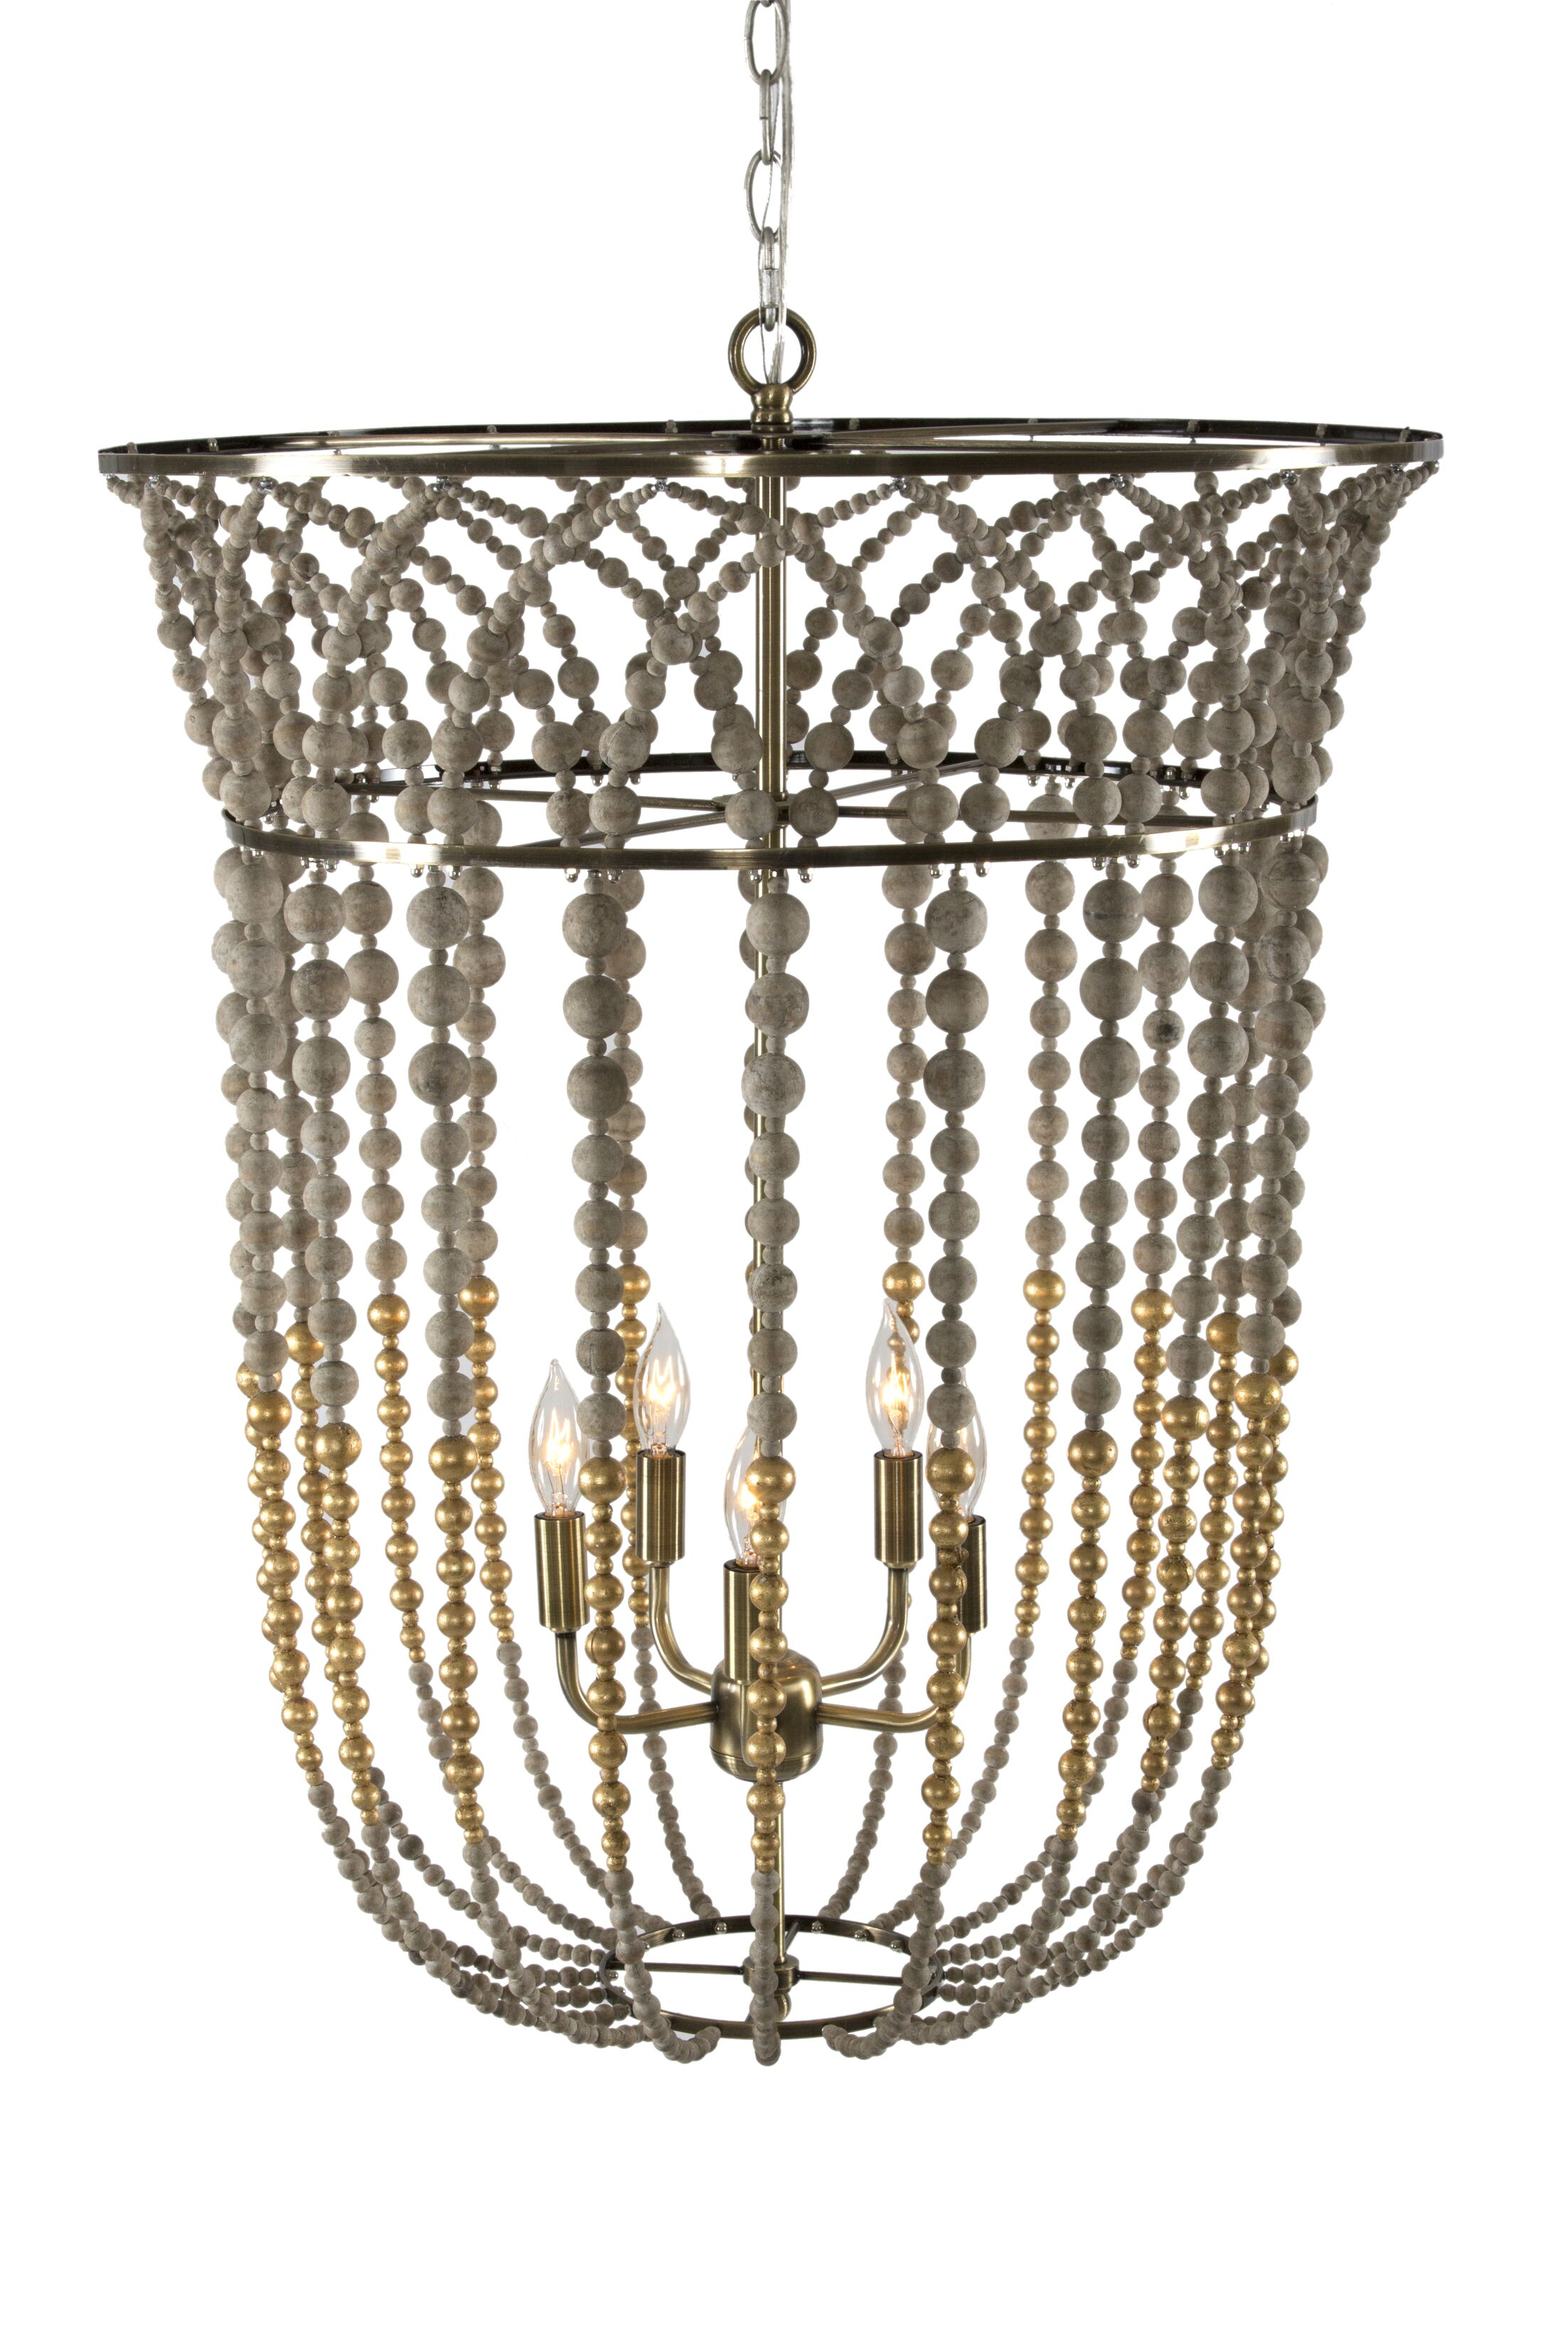 Flared Bell Urn Pendant Finish: Gold/Gray